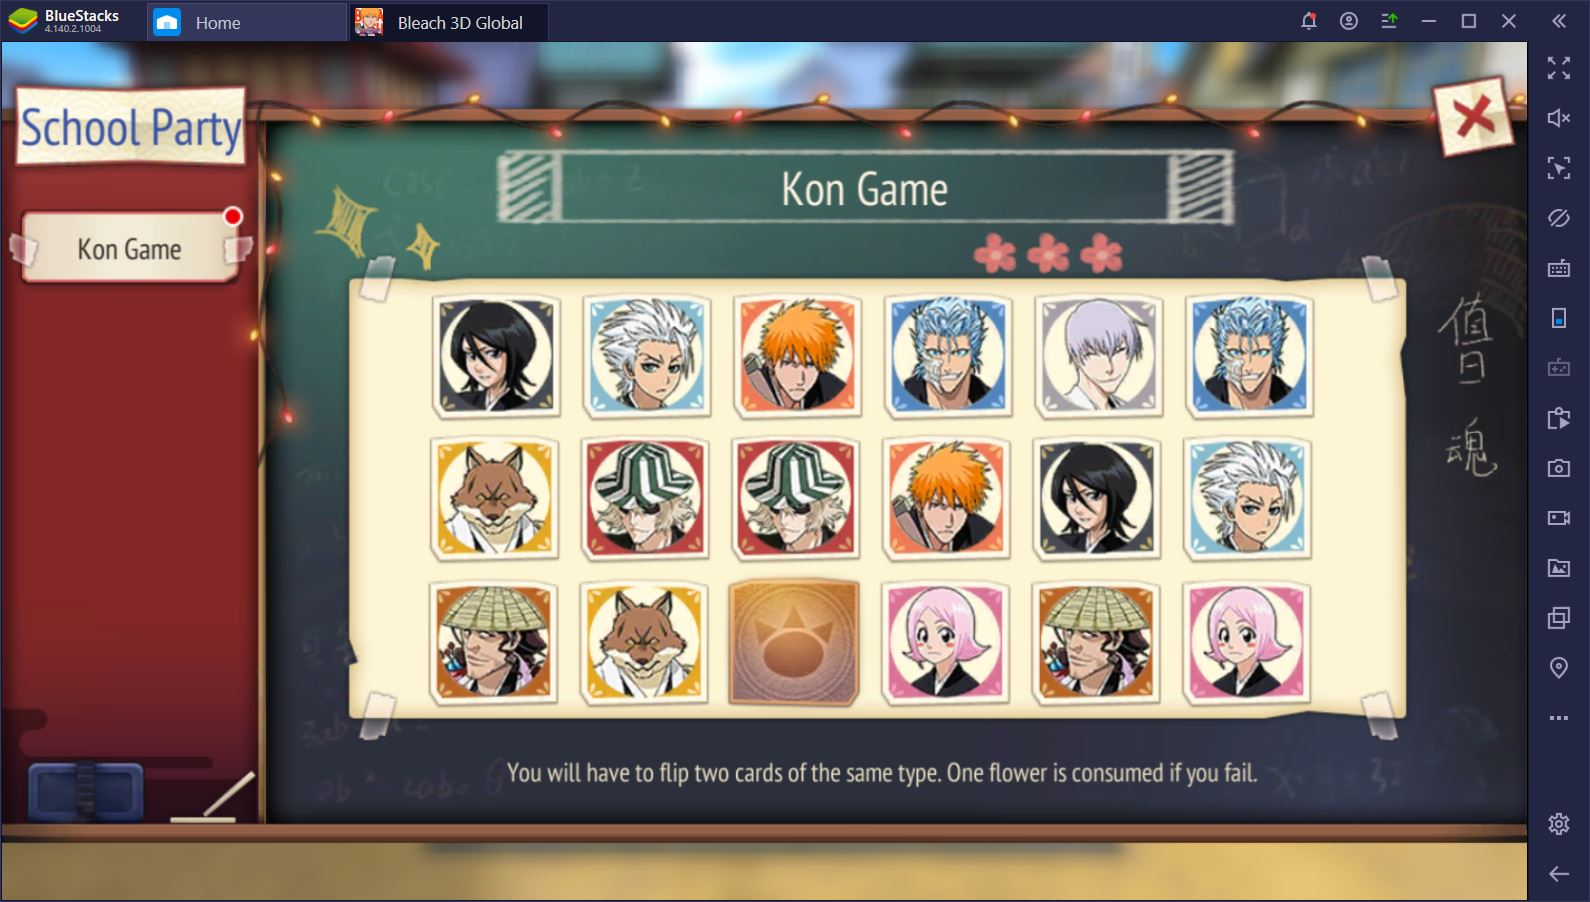 Bleach Mobile Game Modes Img 6